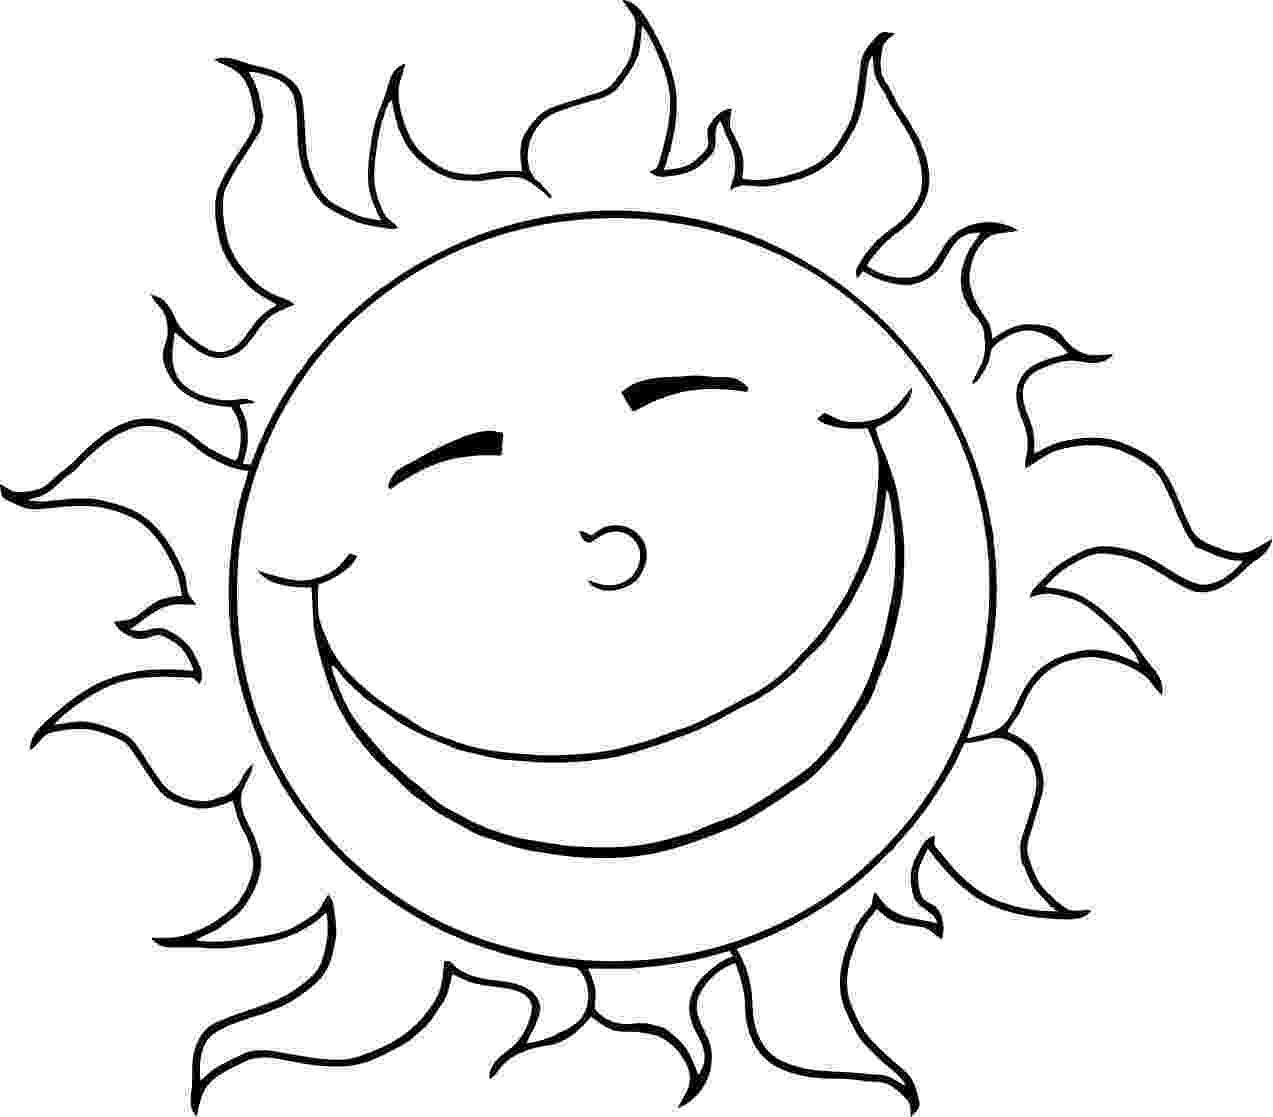 sun coloring pages free printable sun coloring pages for kids pages coloring sun